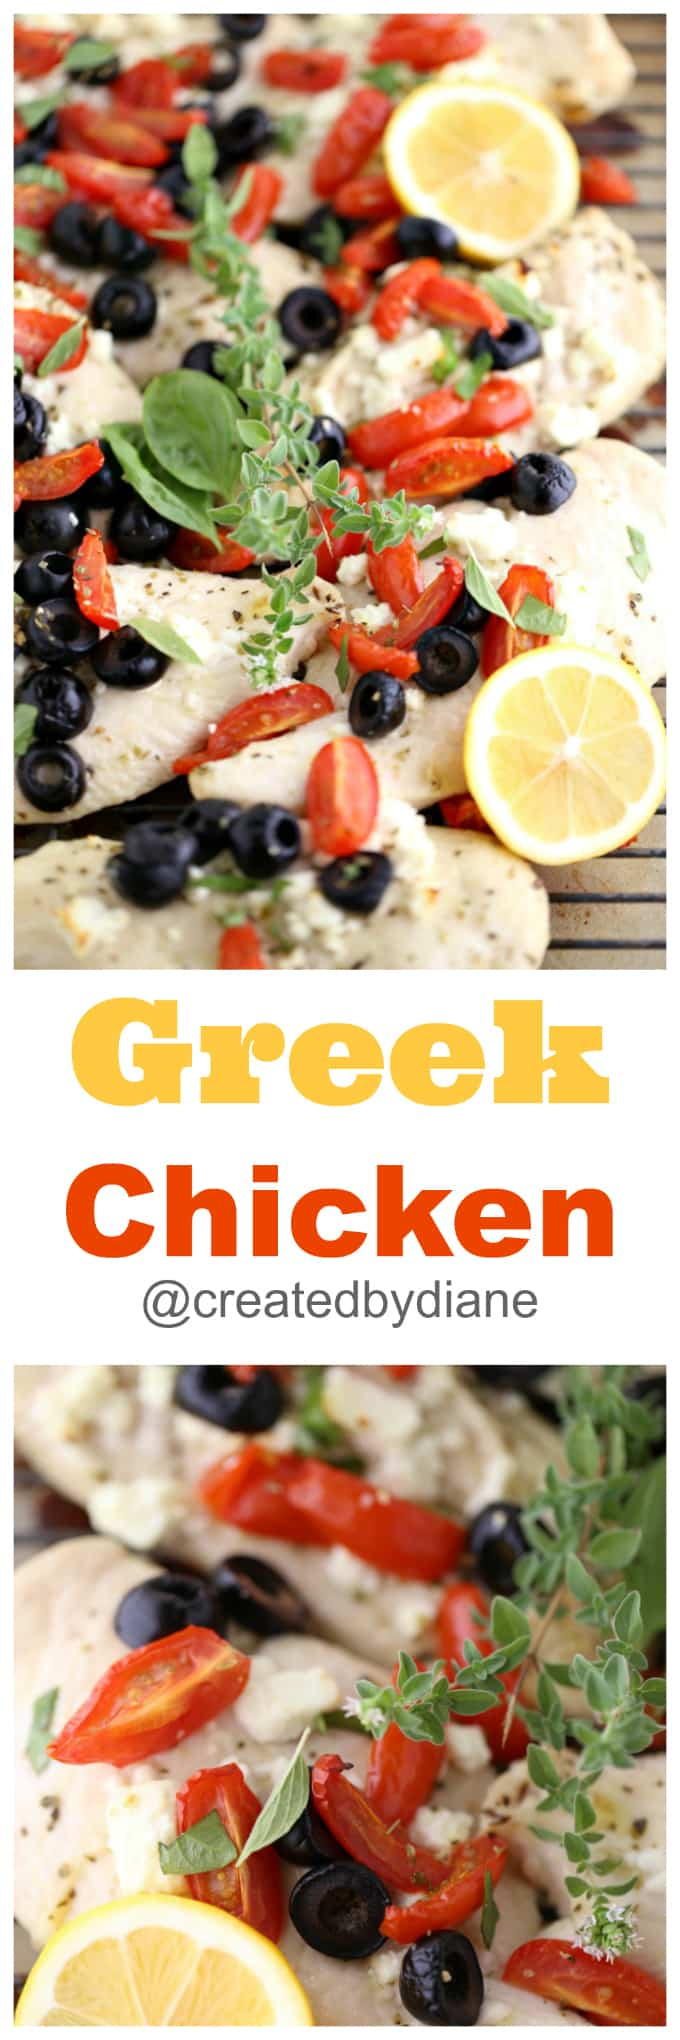 greek chicken with tomatoes, olives and feta cheese, paleo @createdbydiane